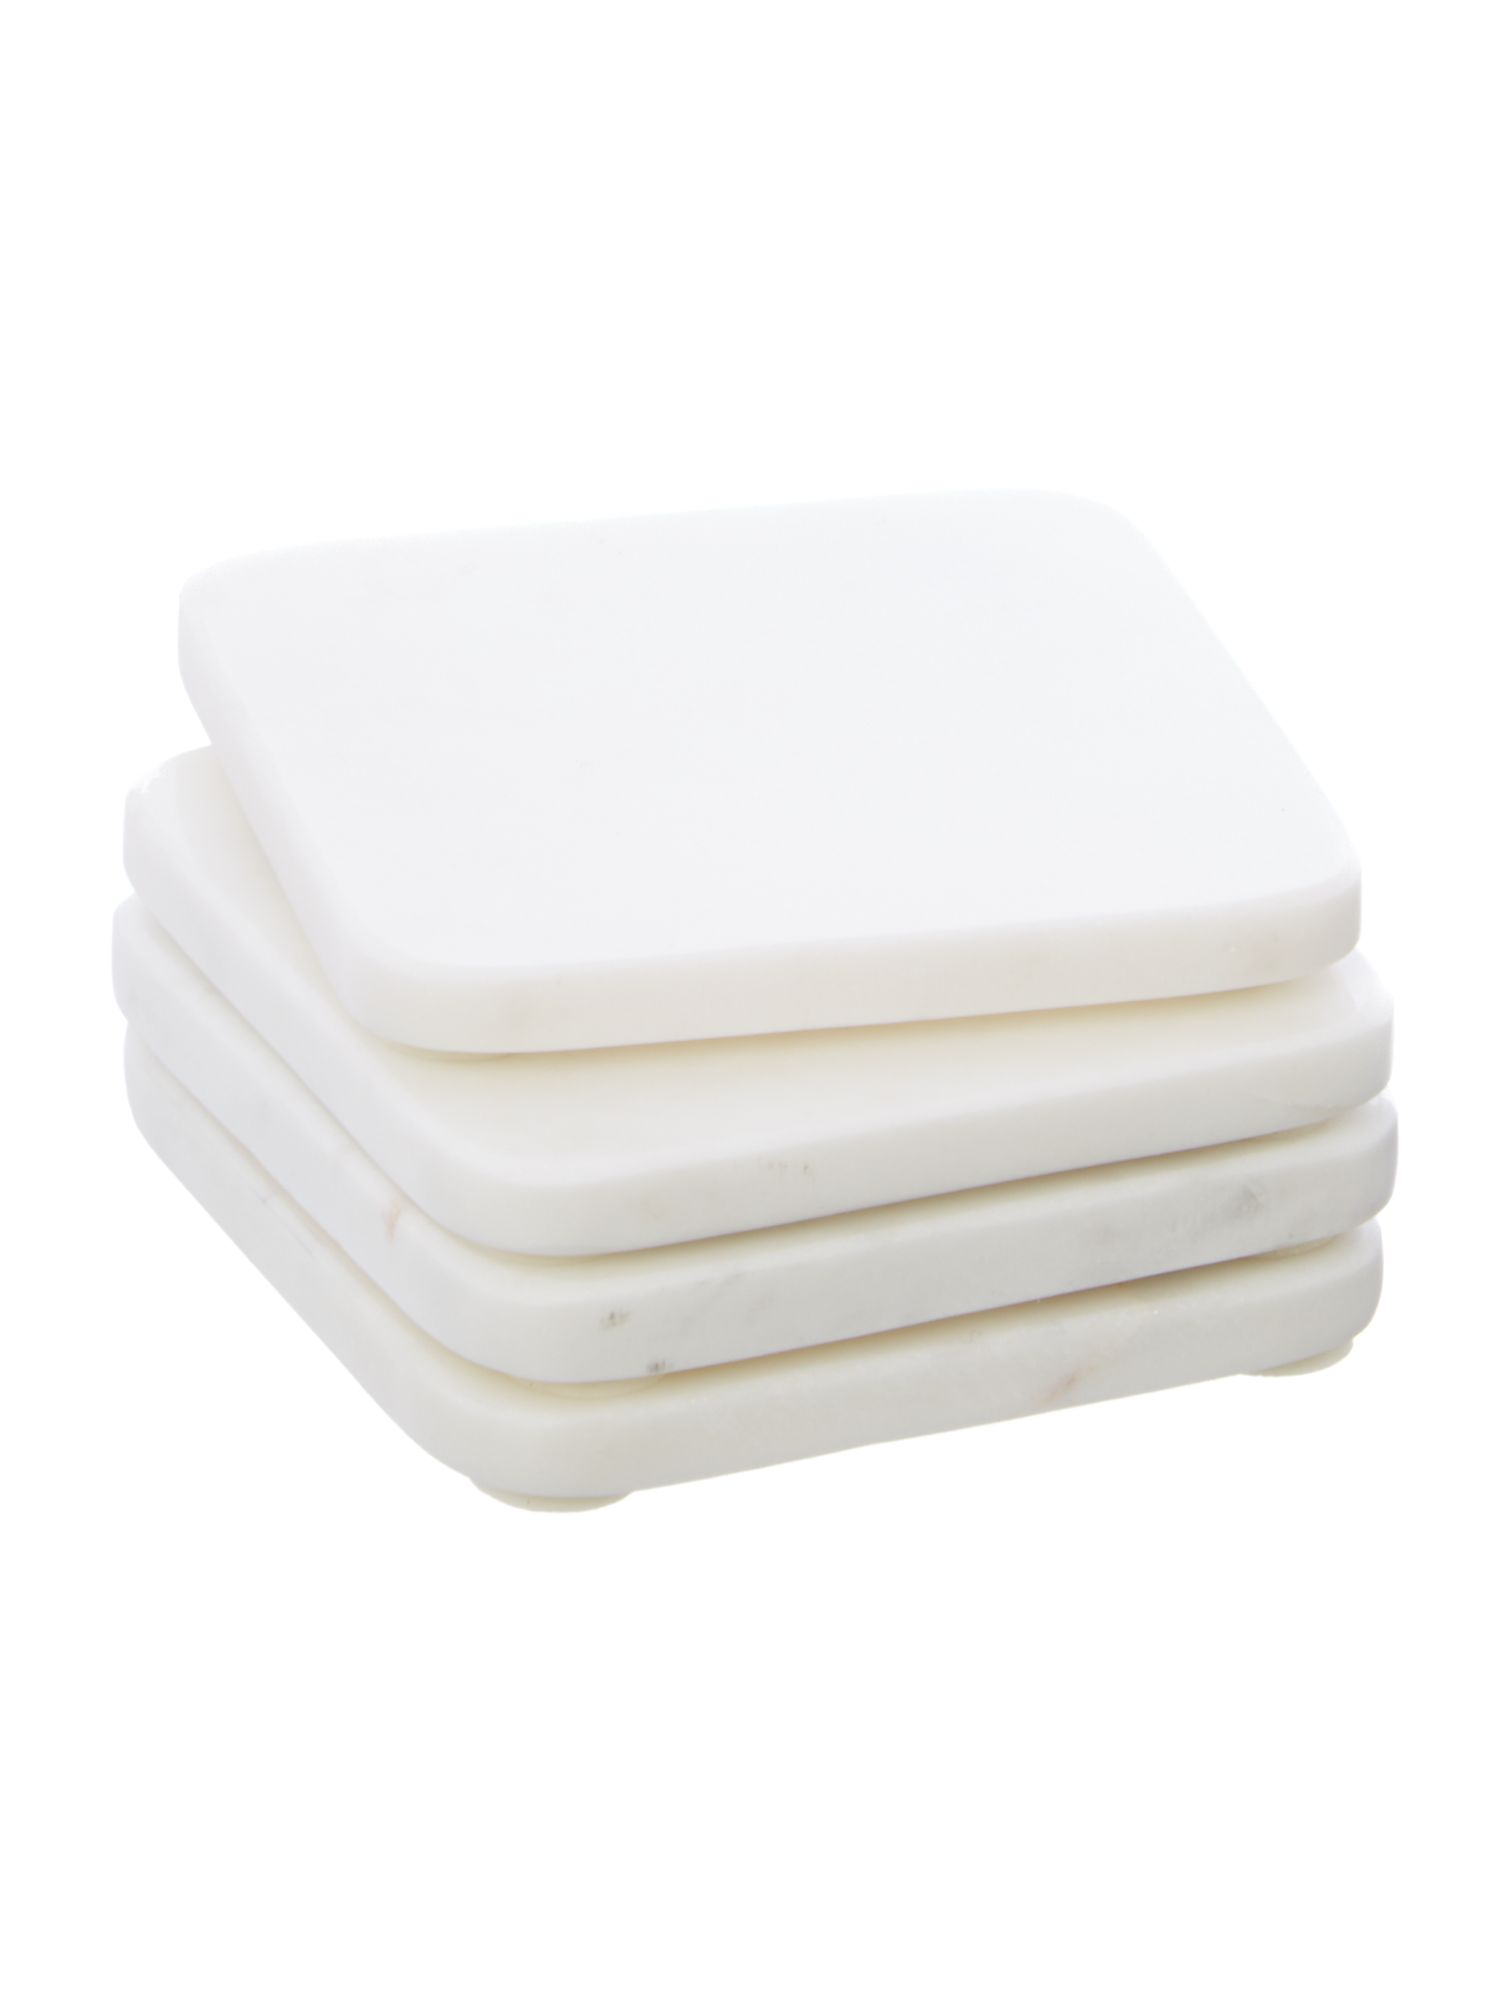 Casa white marble coaster set 4